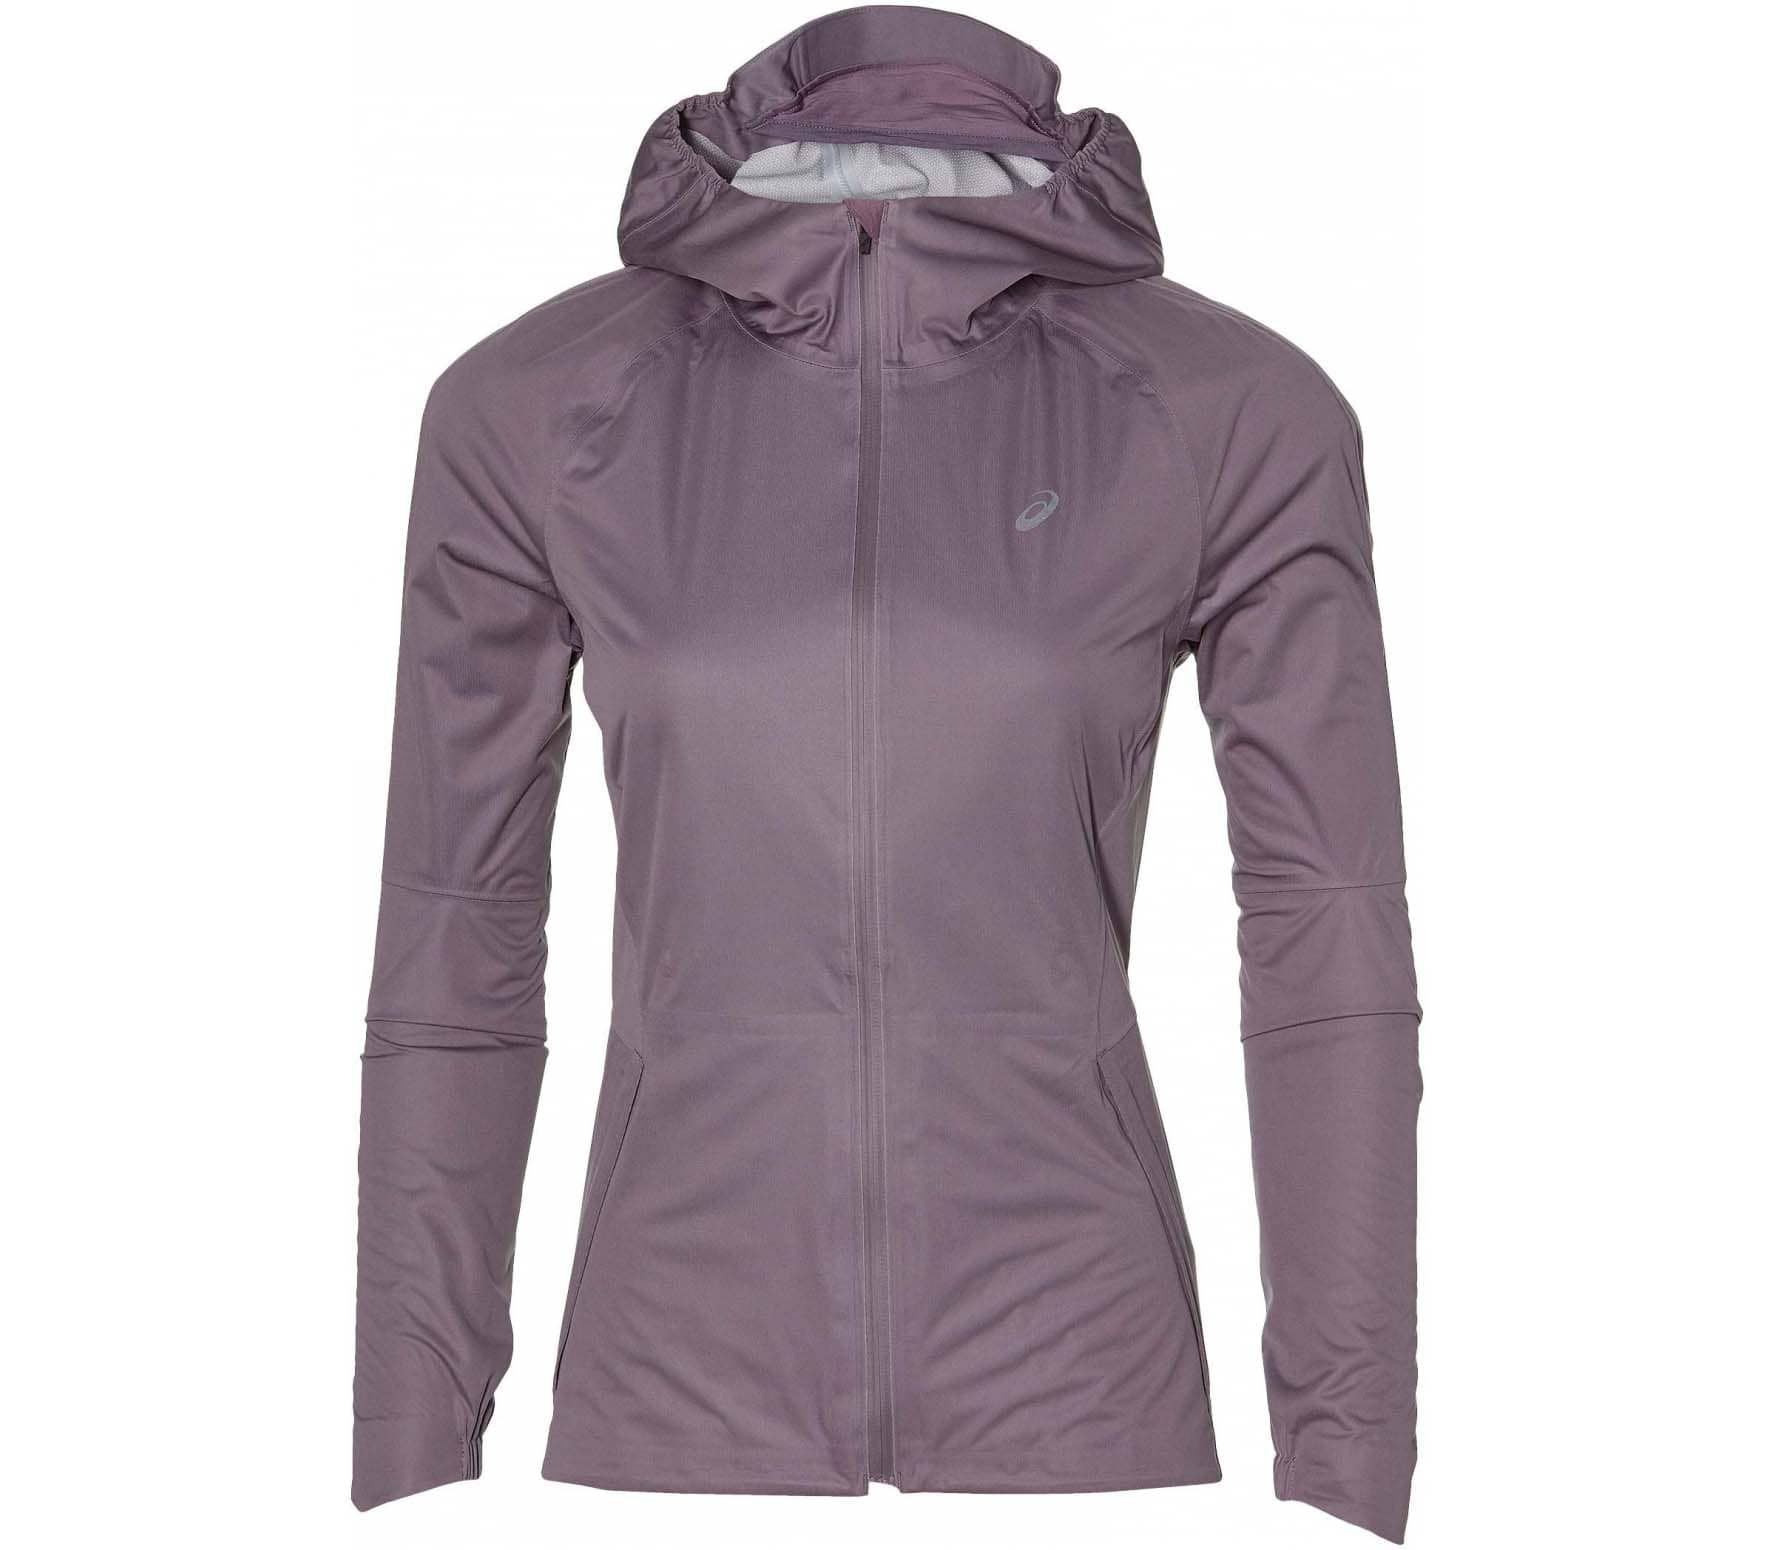 Winter Accelerate Women Running Jacket